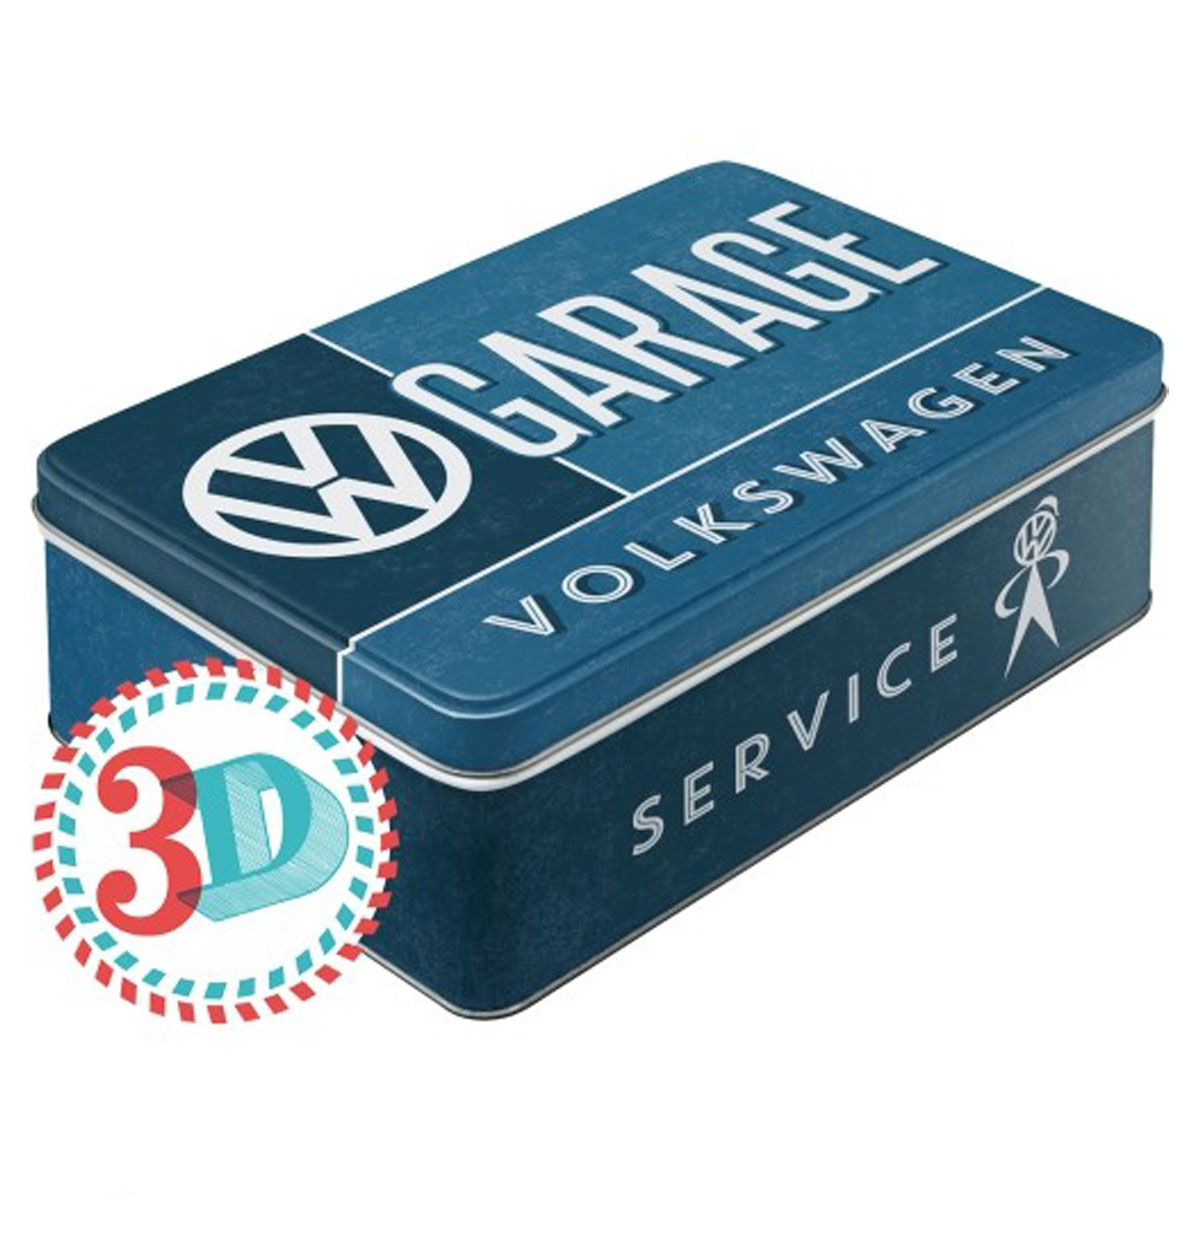 VW Volkswagen Garage Tin Box Flat